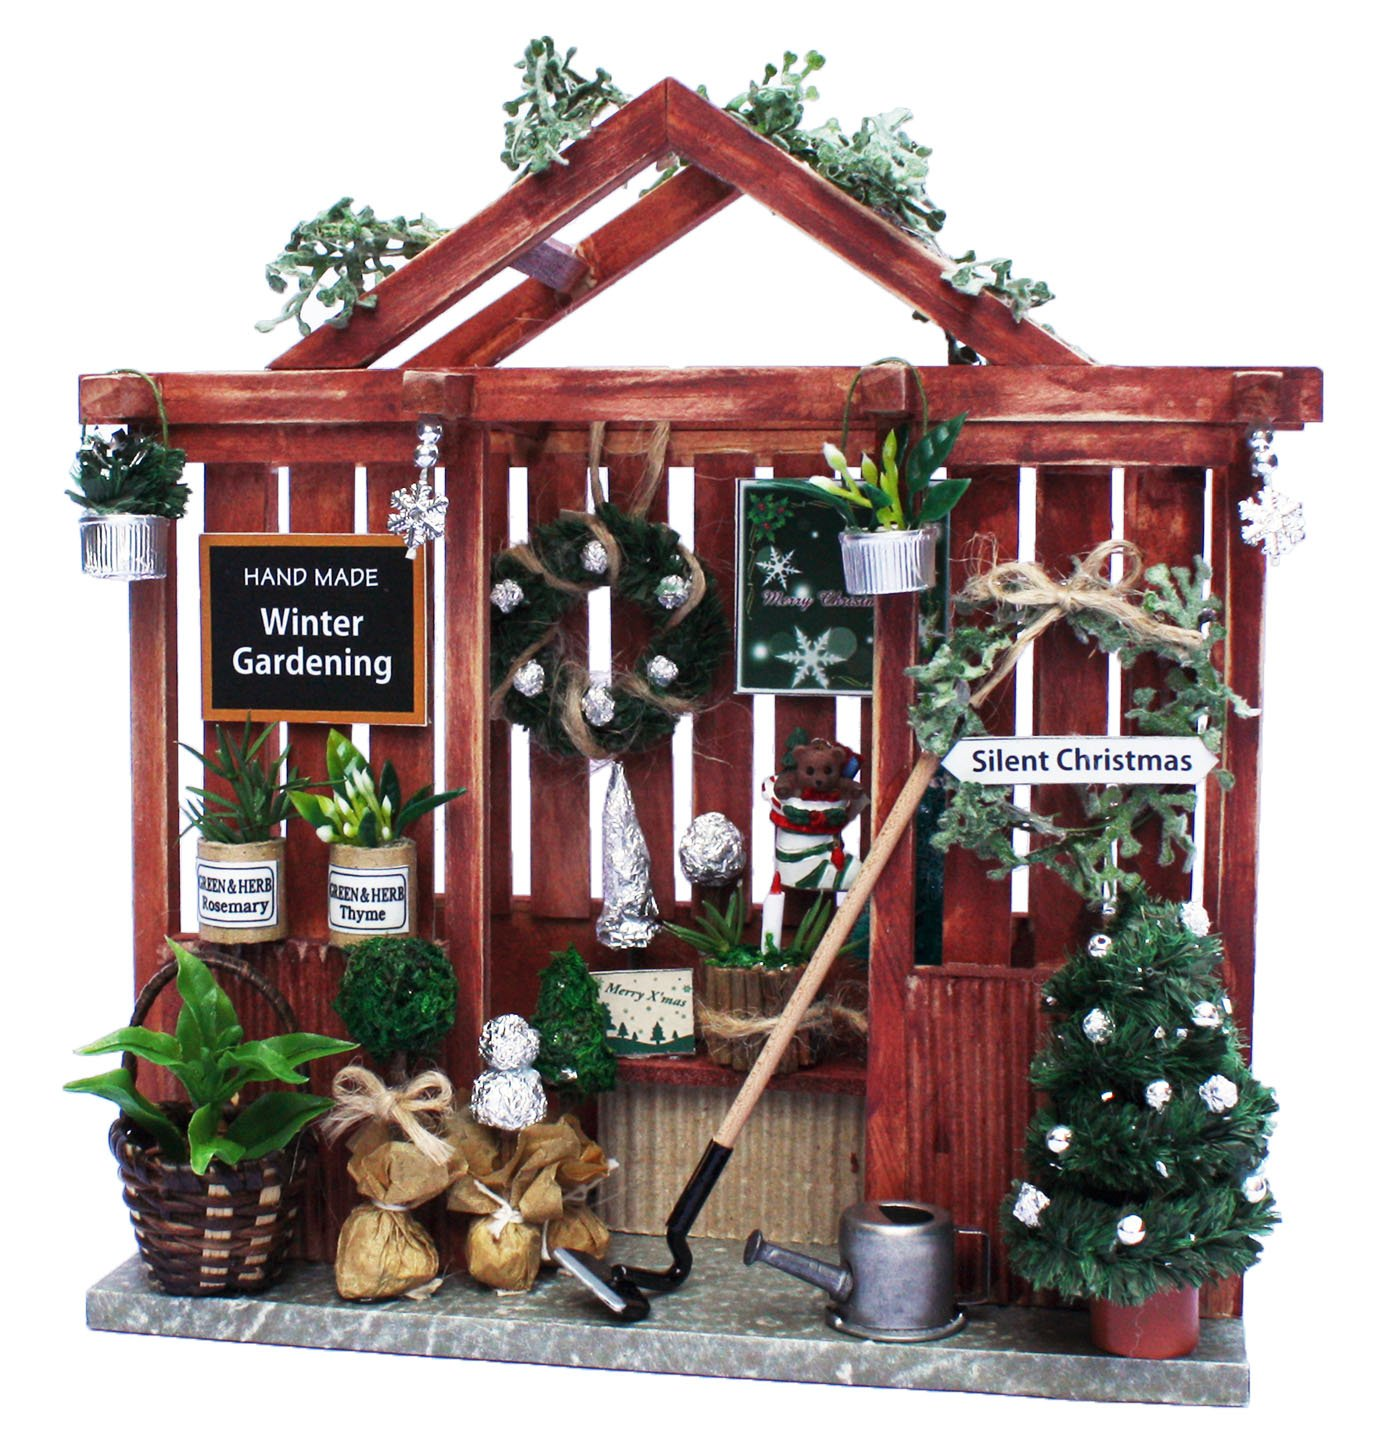 Billy handmade Dollhouse Kit Kit di Natale Garden House 8430 (japan import)